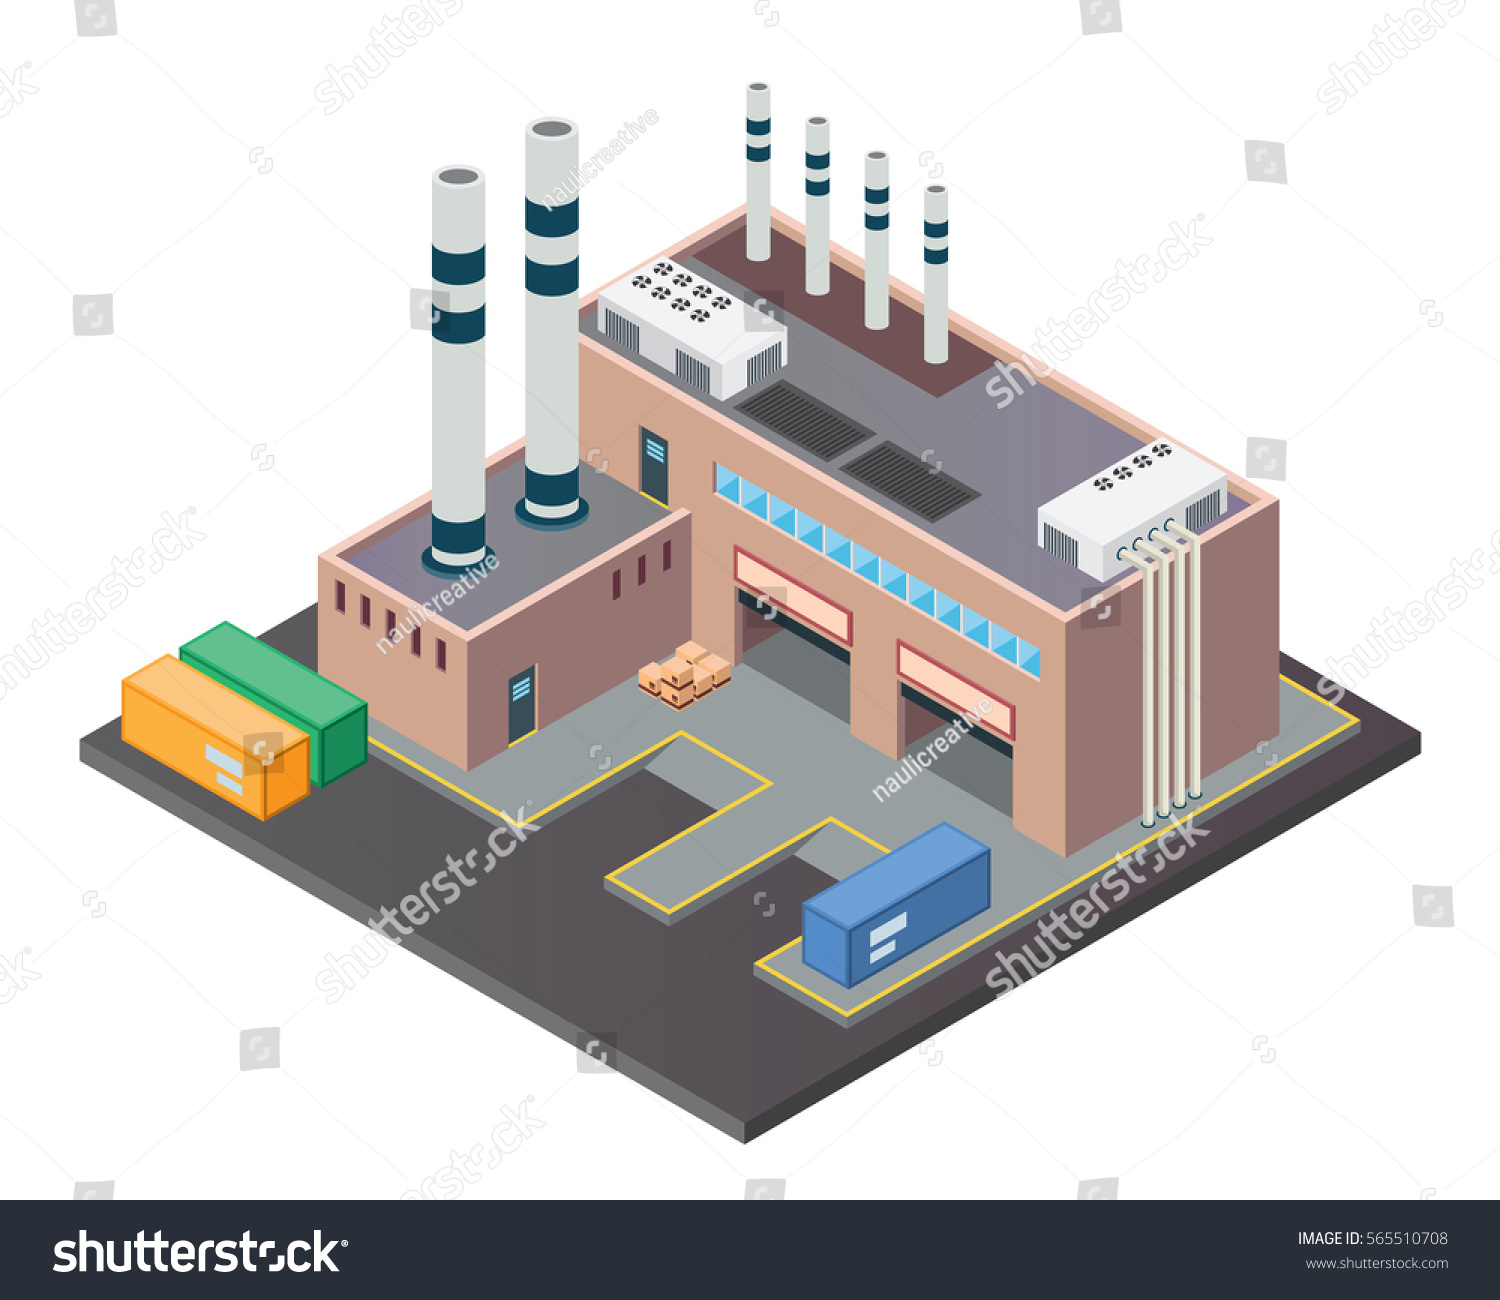 Modern Isometric Industrial Factory Warehouse Building